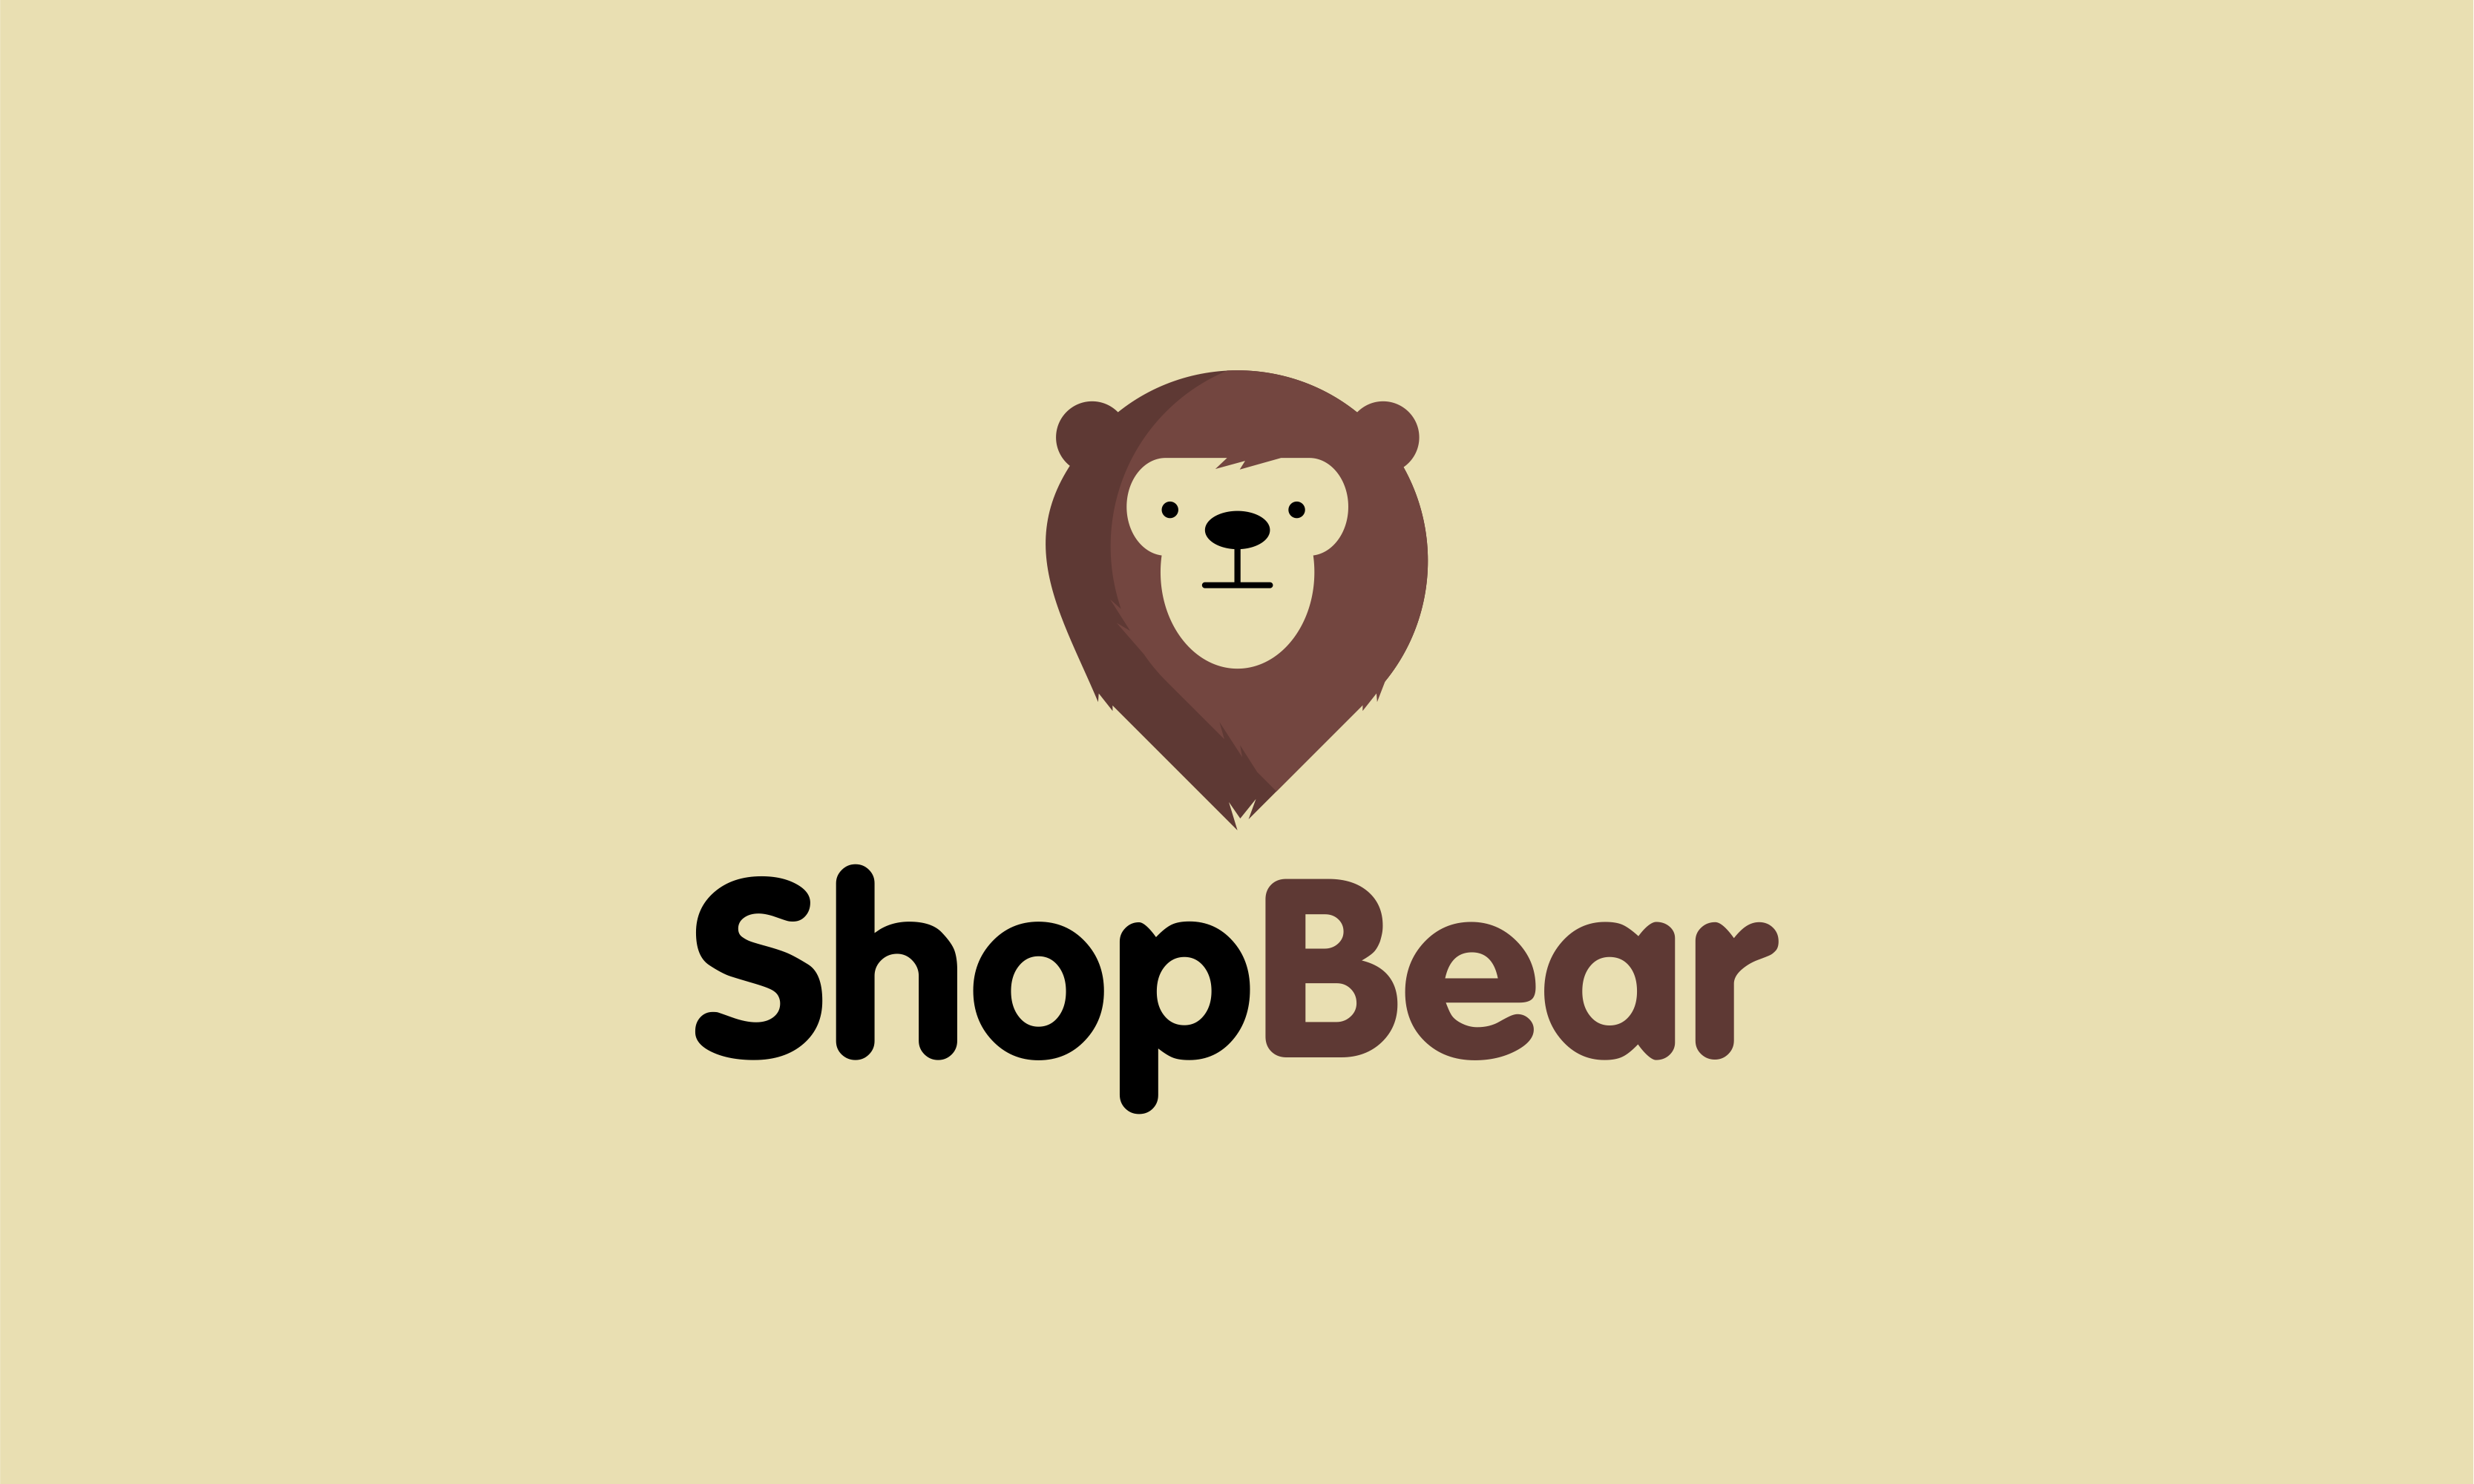 Shopbear - E-commerce business name for sale